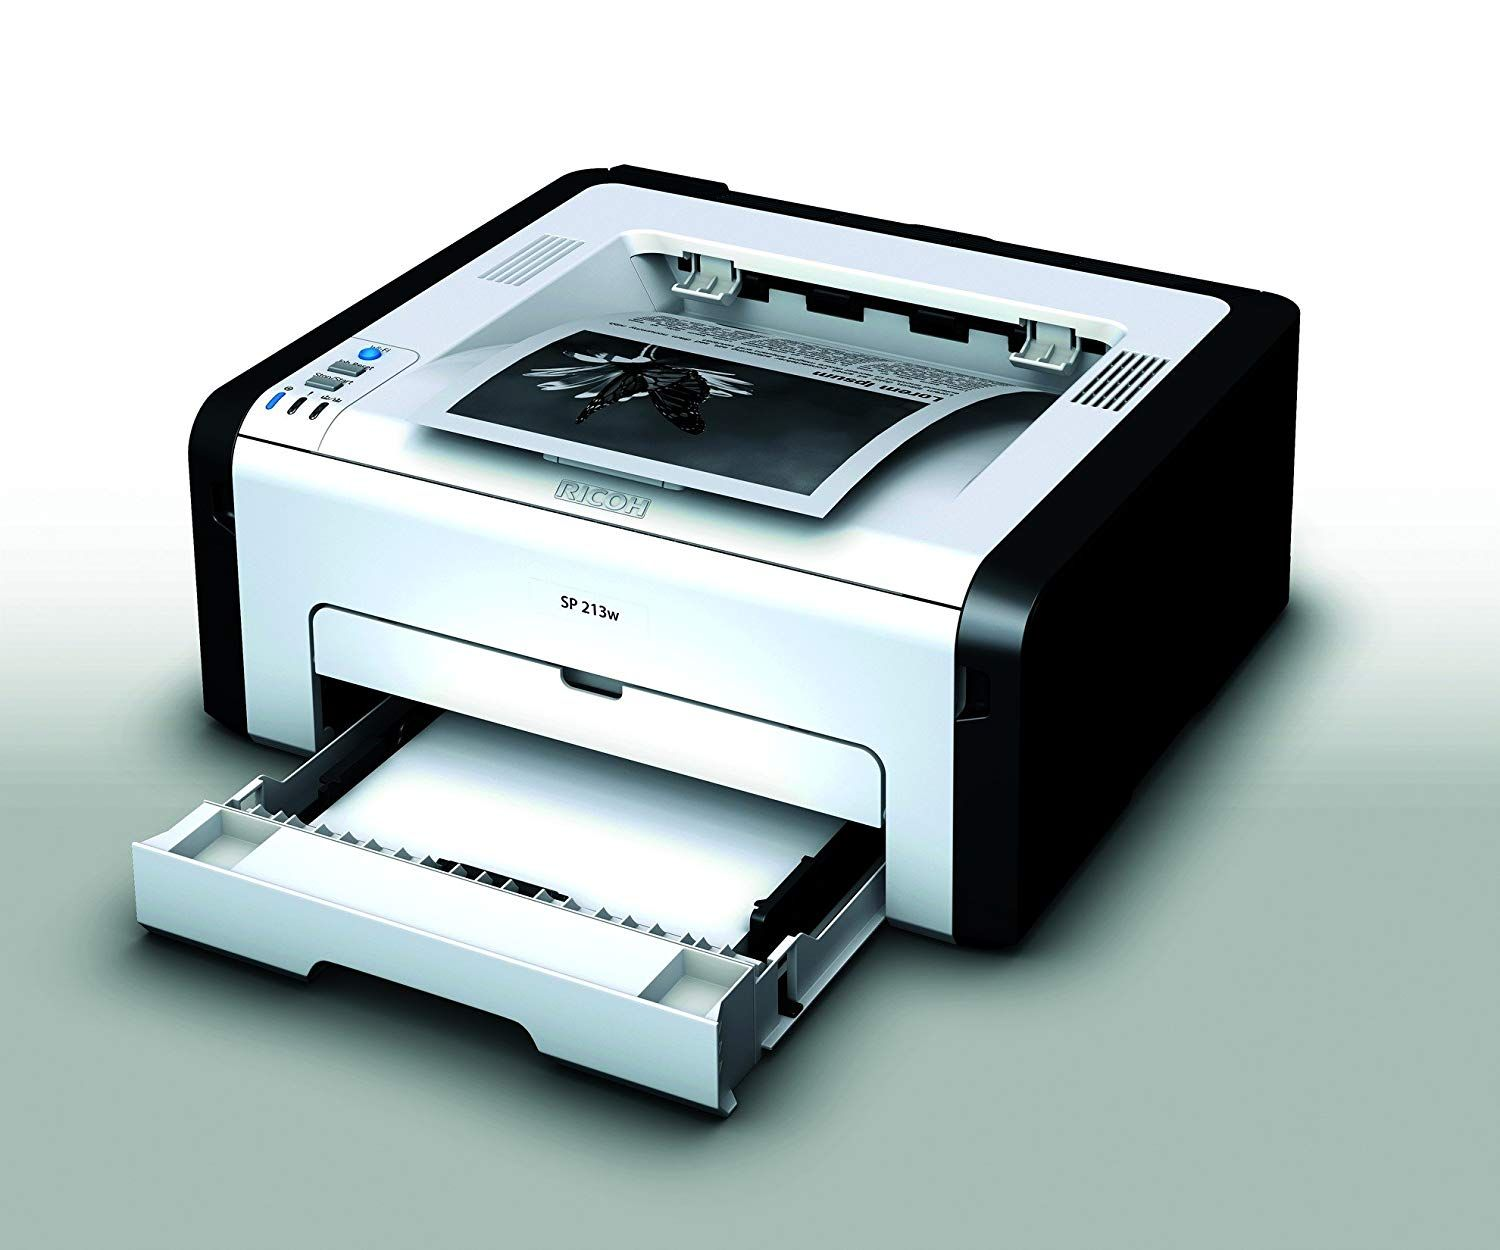 All About Latest Technology Best Printers For Small Office To Buy In 2019 Best Printers Small Office Printer